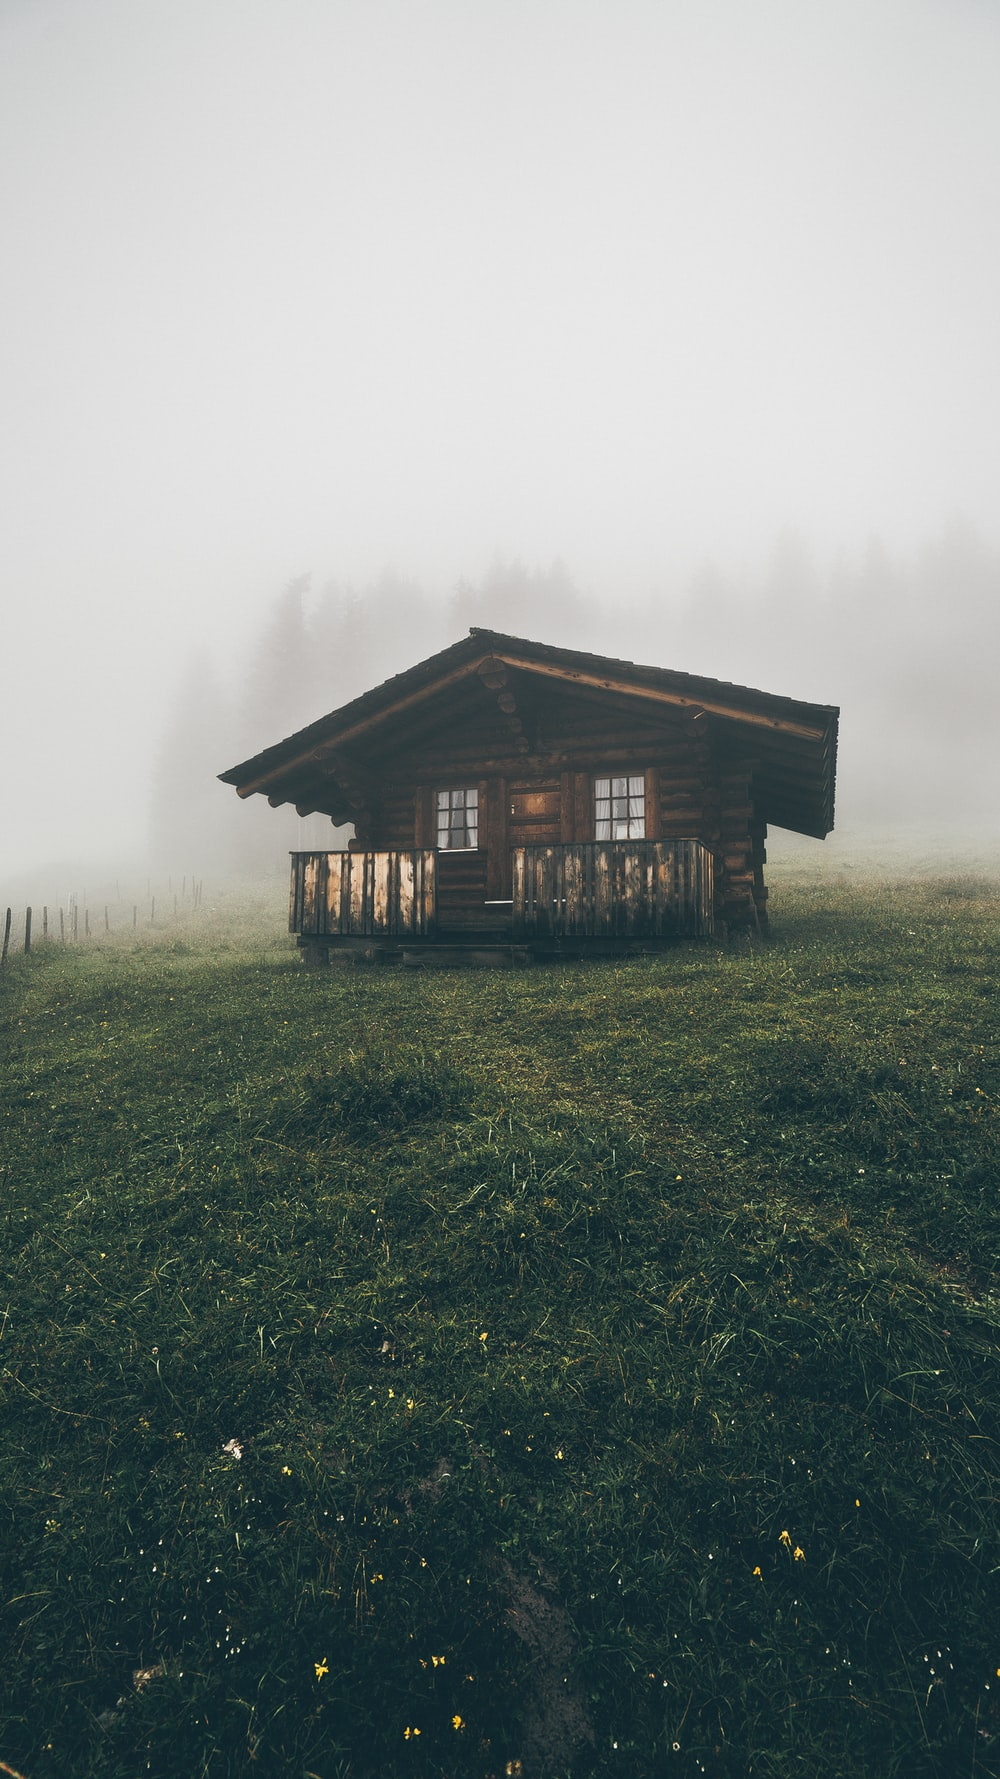 brown wooden house in a field with fog during daytime